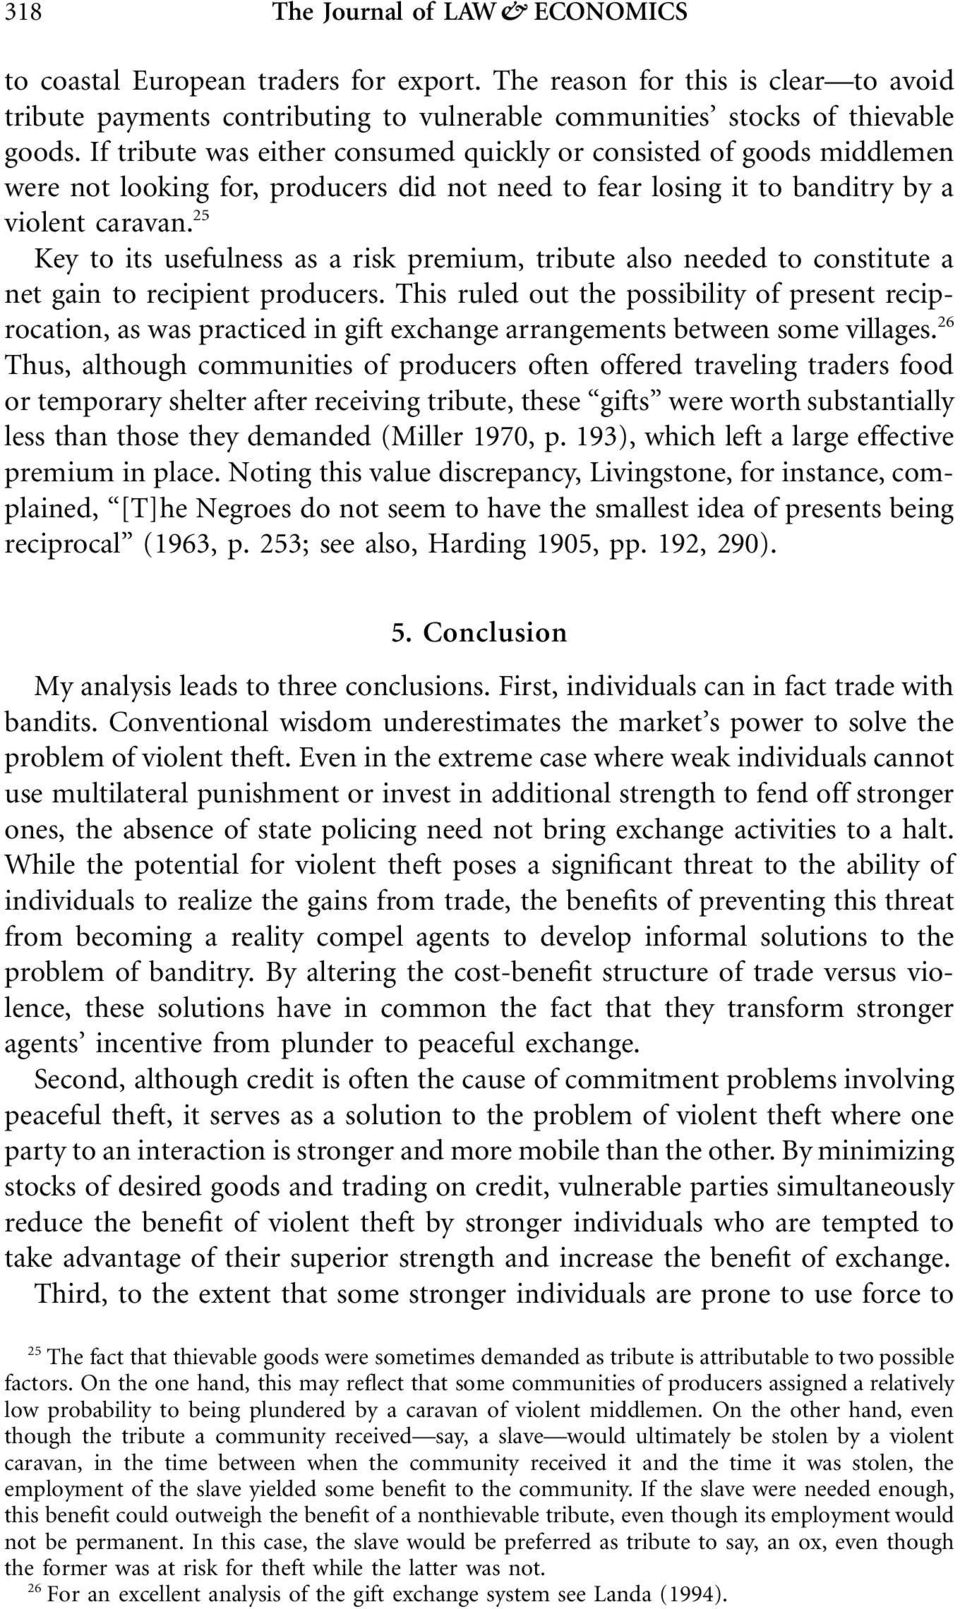 25 Key to its usefulness as a risk premium, tribute also needed to constitute a net gain to recipient producers.